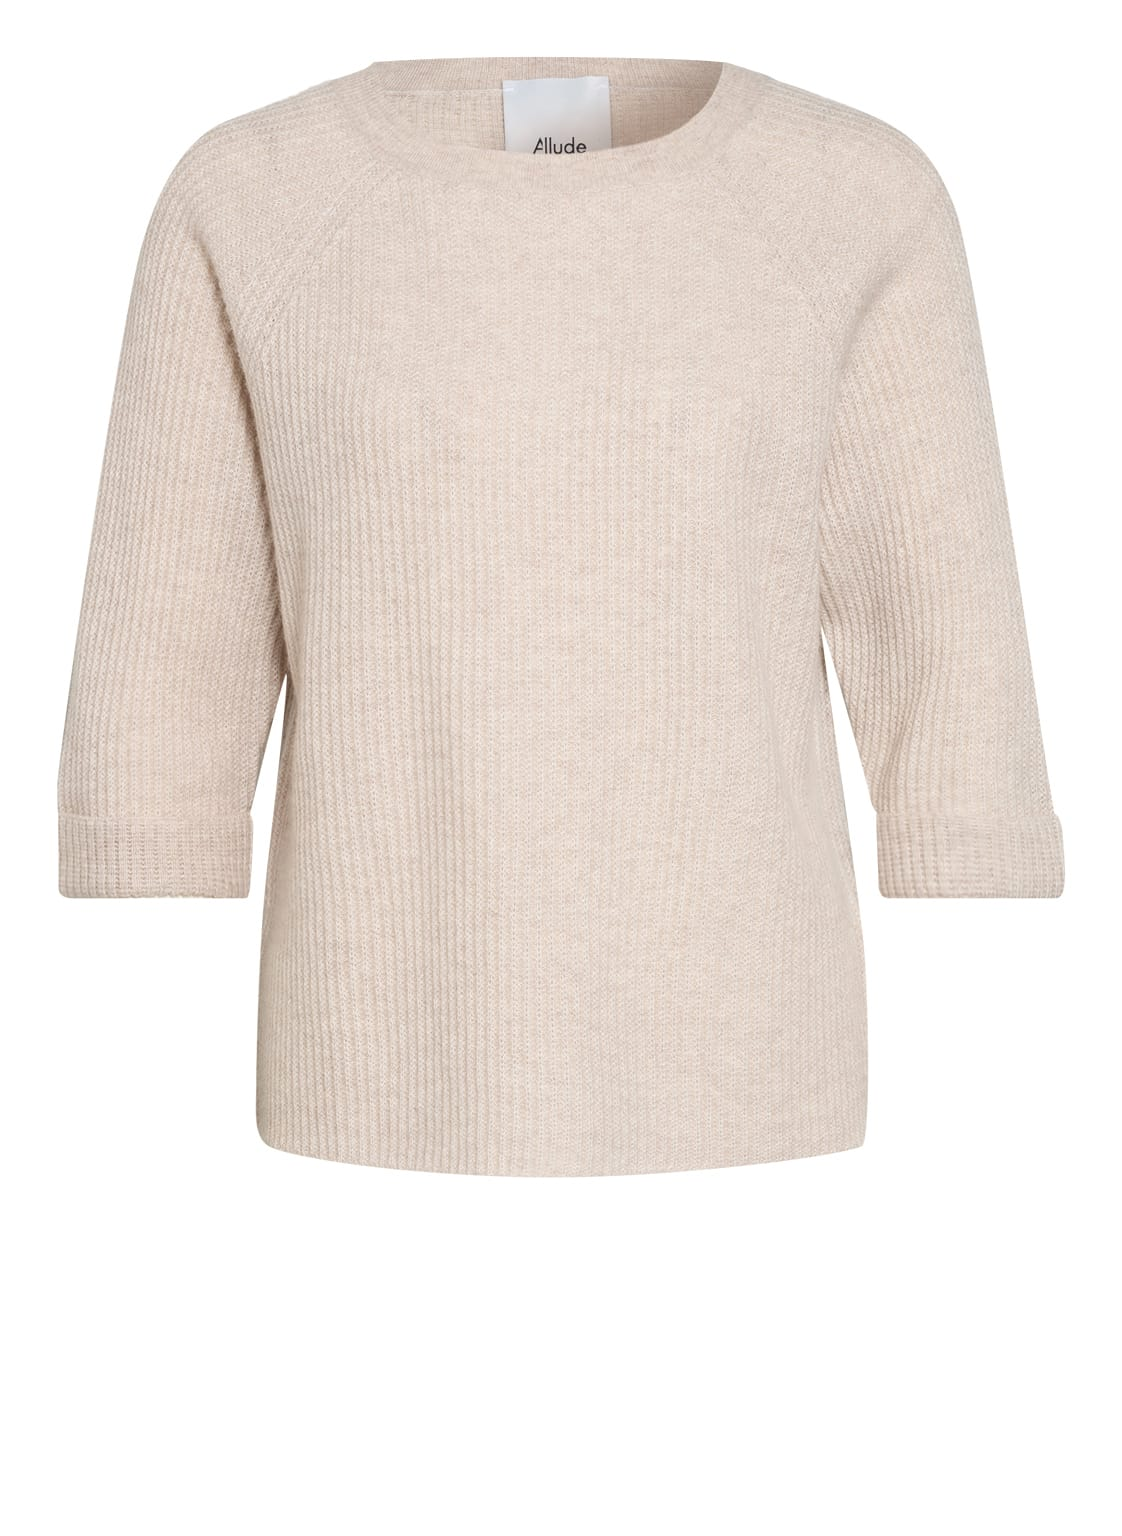 Image of Allude Cashmere-Pullover Mit 3/4-Arm beige